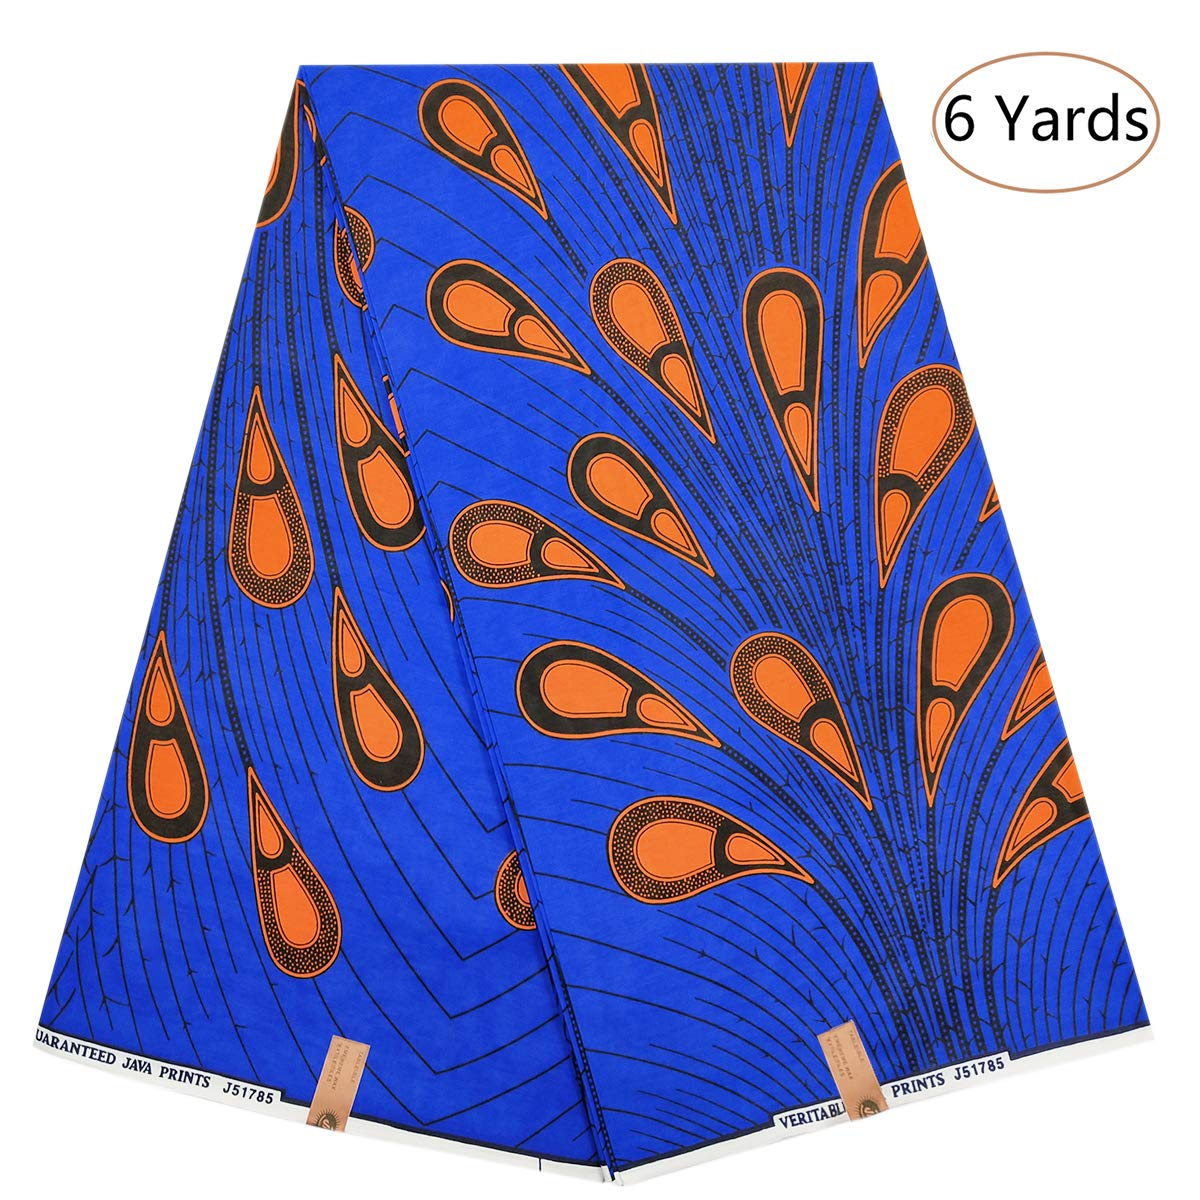 b1e61a088a183 Amazon.com: Dexuelan 6 Yards Ankara Print Fabric African Wax Print Fabric  with Feather Designs for Sewing Dress Clothing Designs (Dark Blue and Brown)